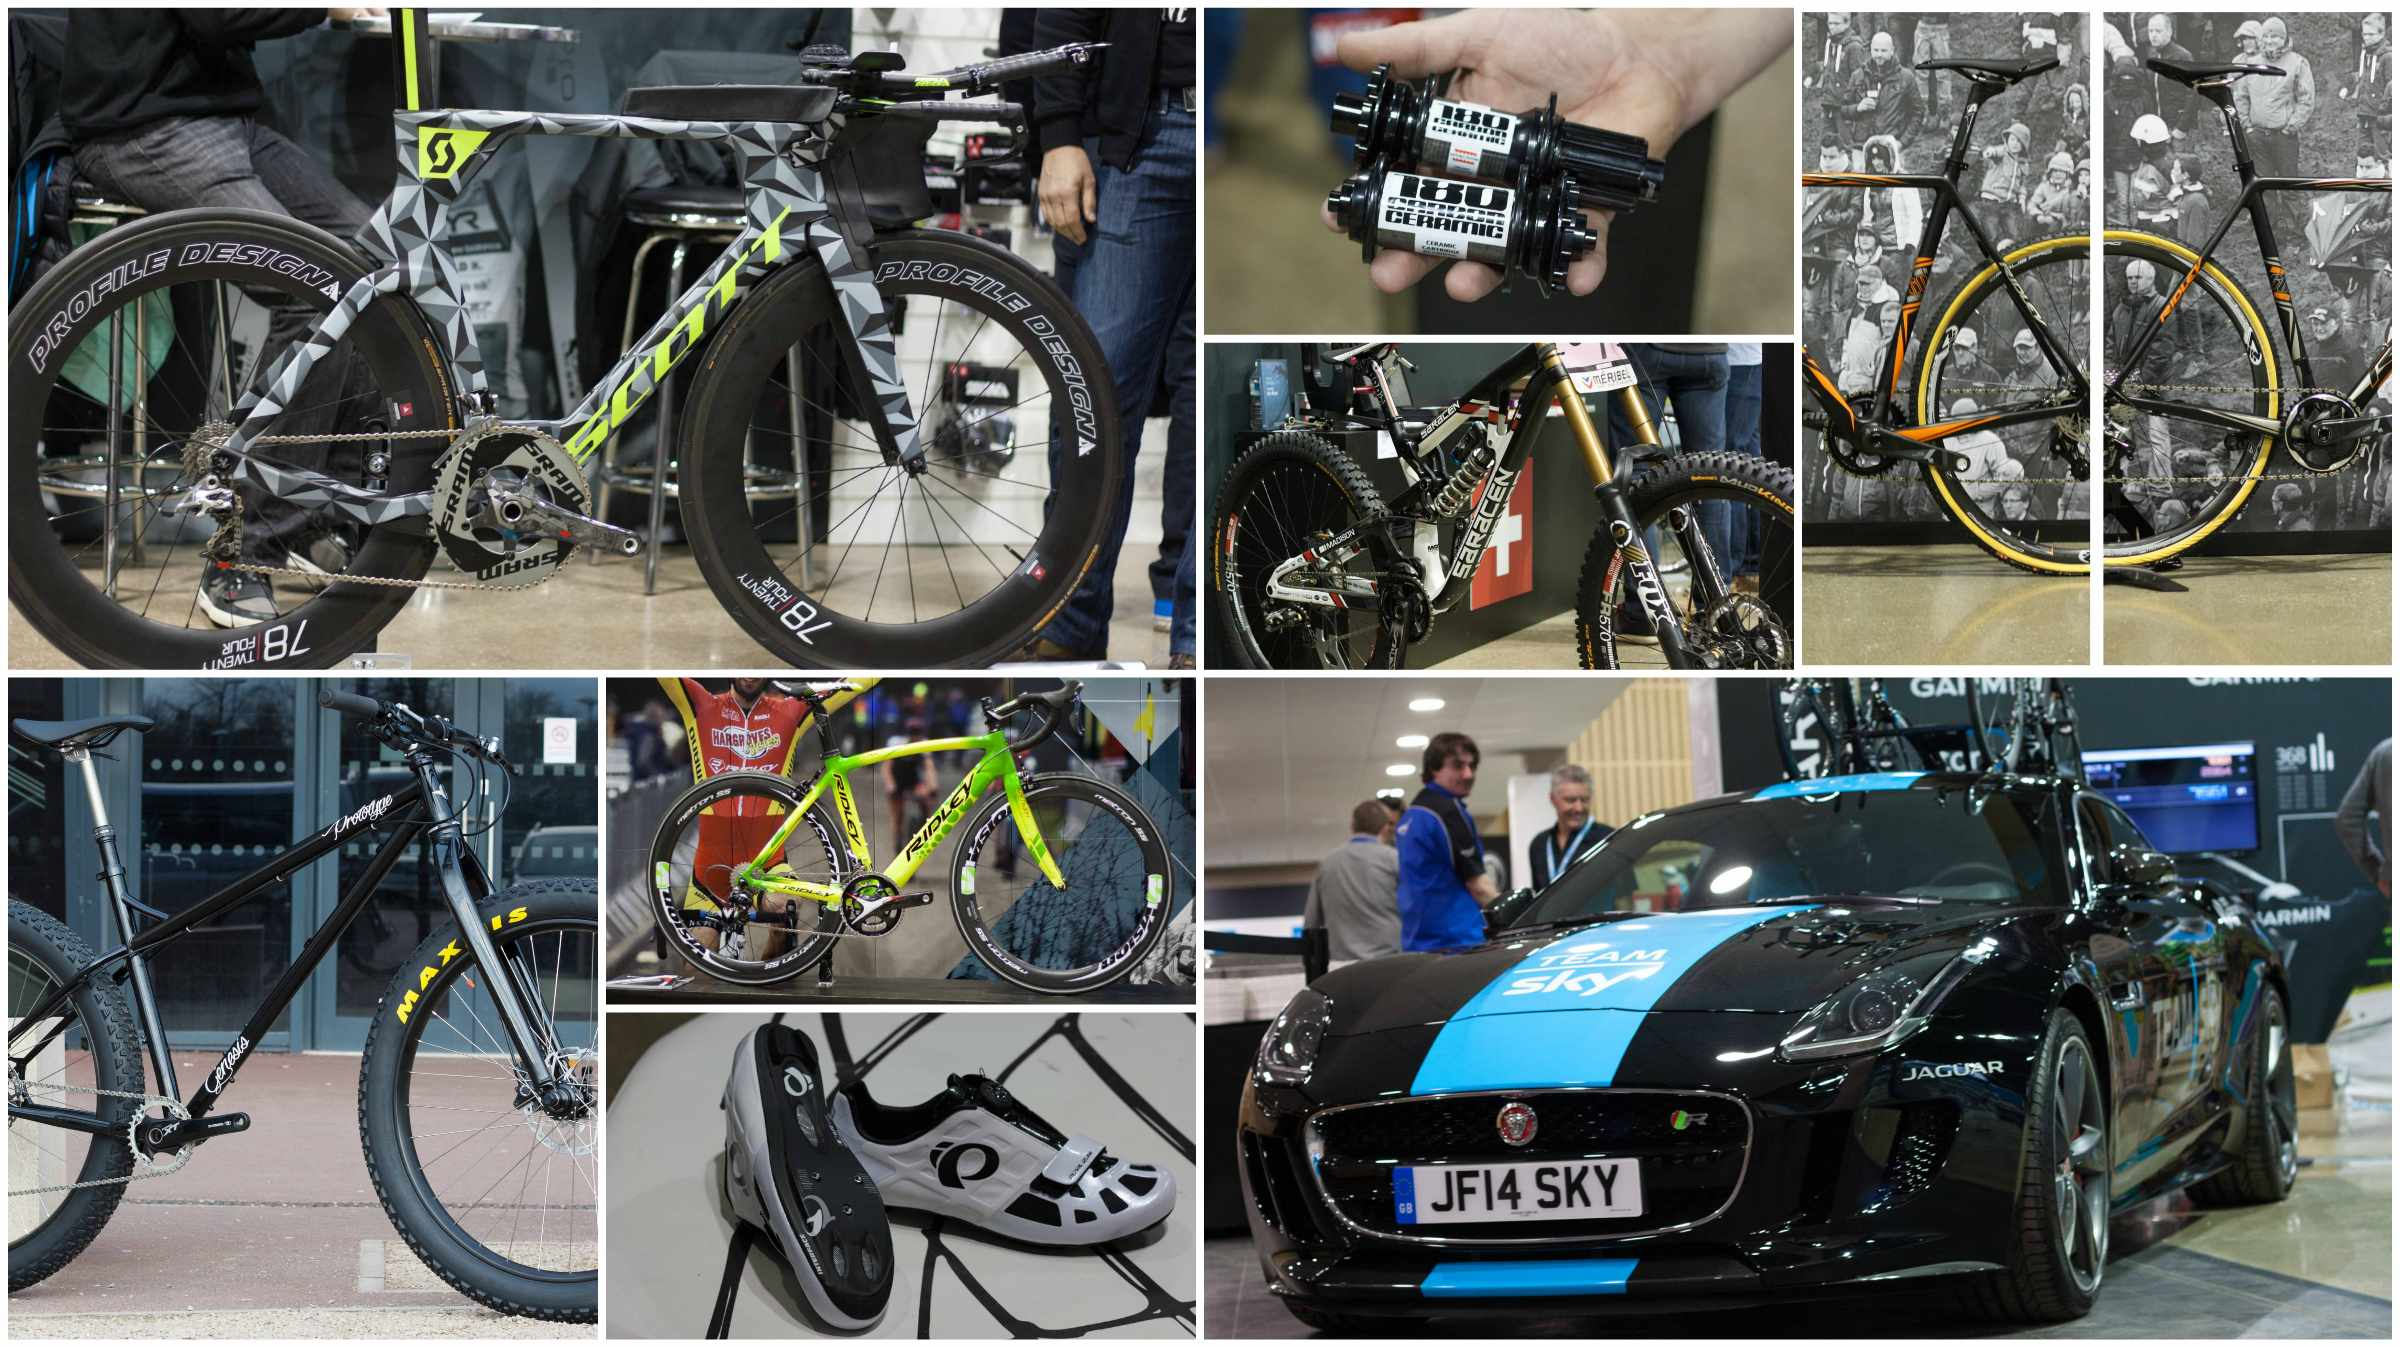 Our picks from the stands at this year's IceBike 2015 trade show